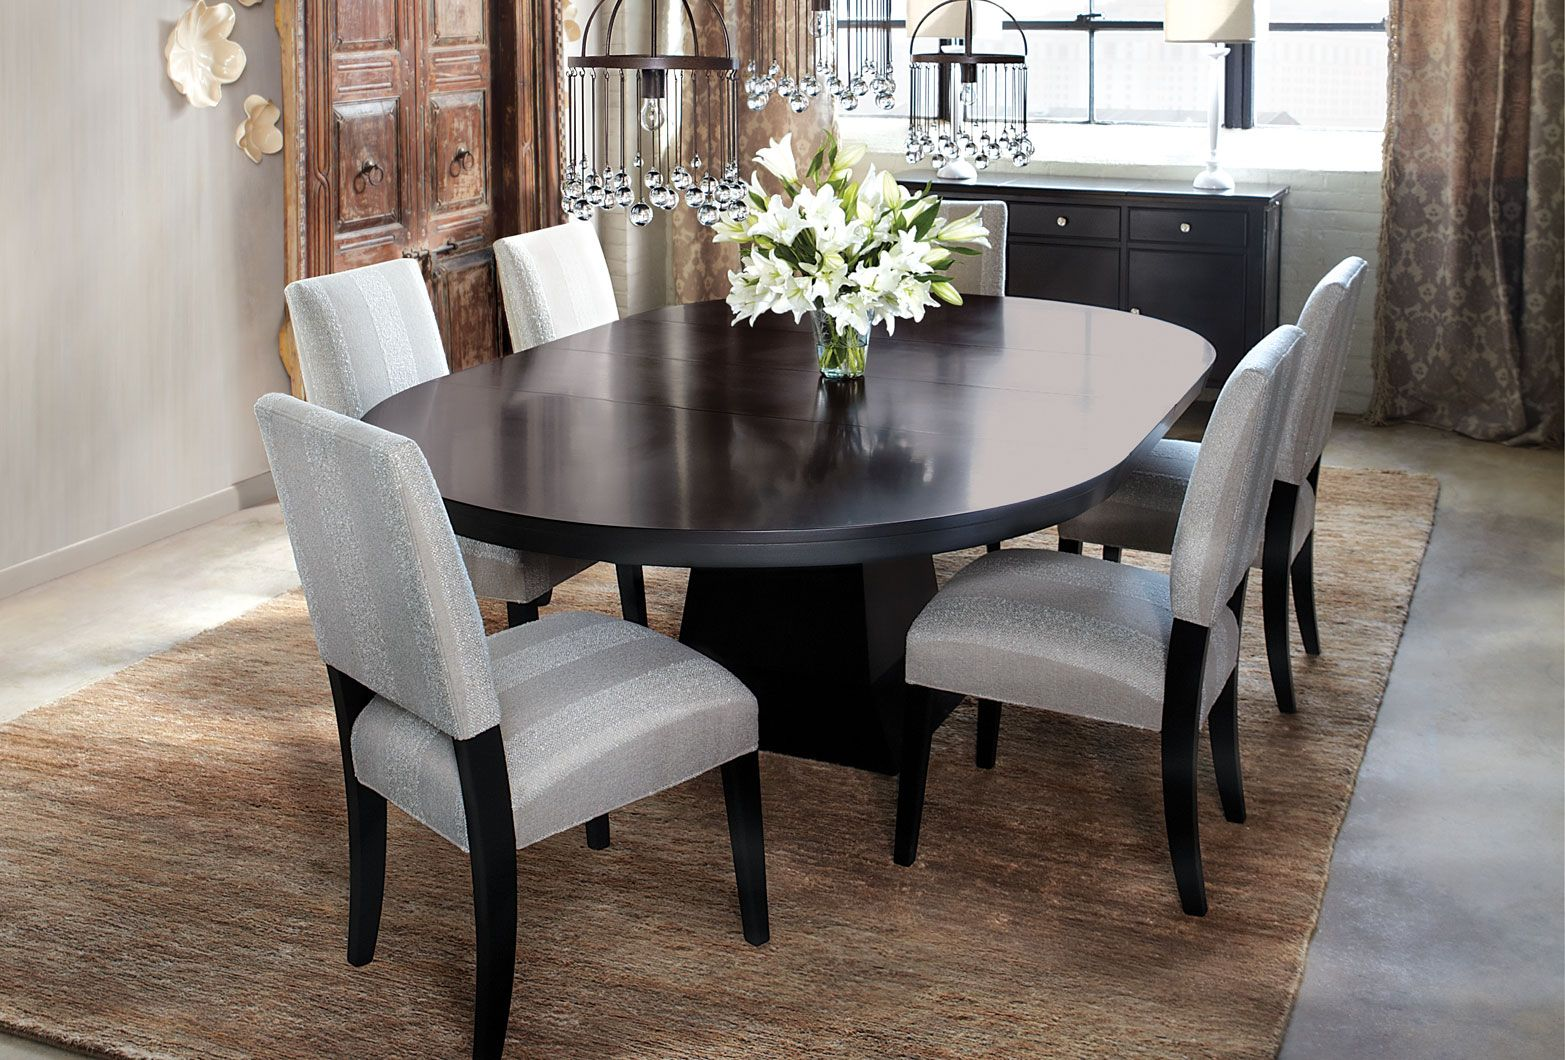 Dining Table Chairs From Arhaus For The Home